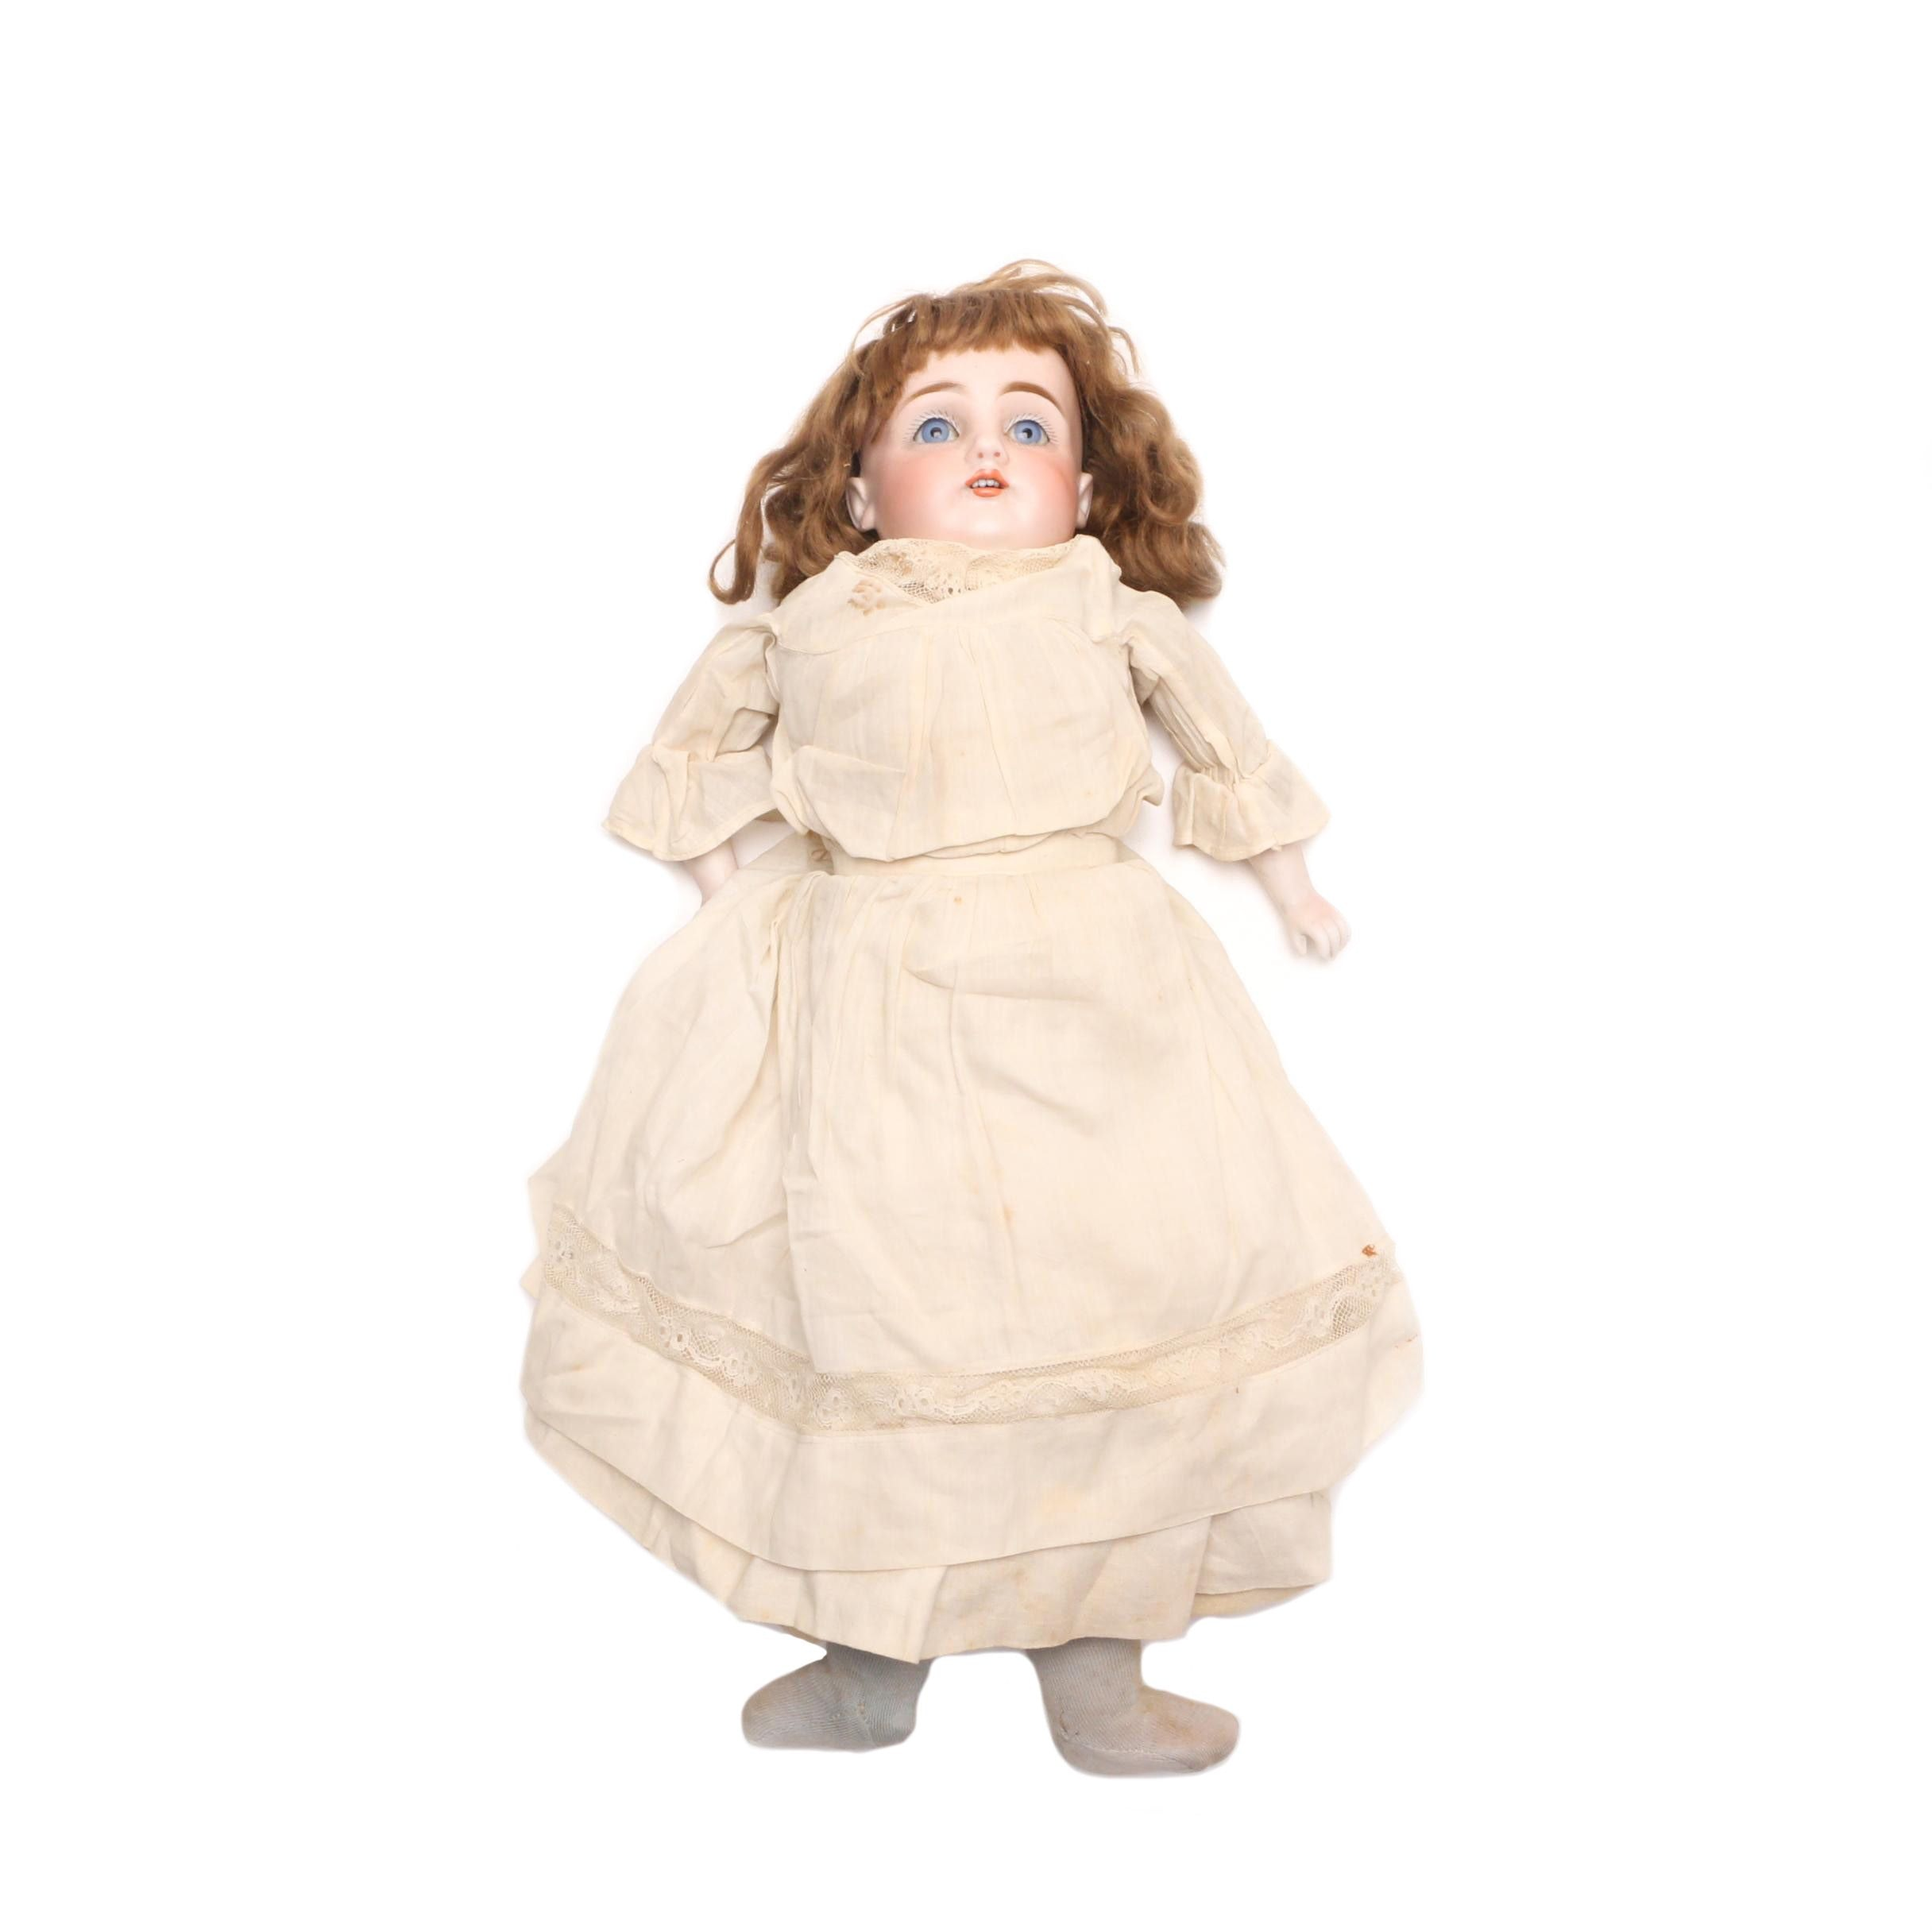 Kestner Bisque Head Doll with leather and Cloth Body